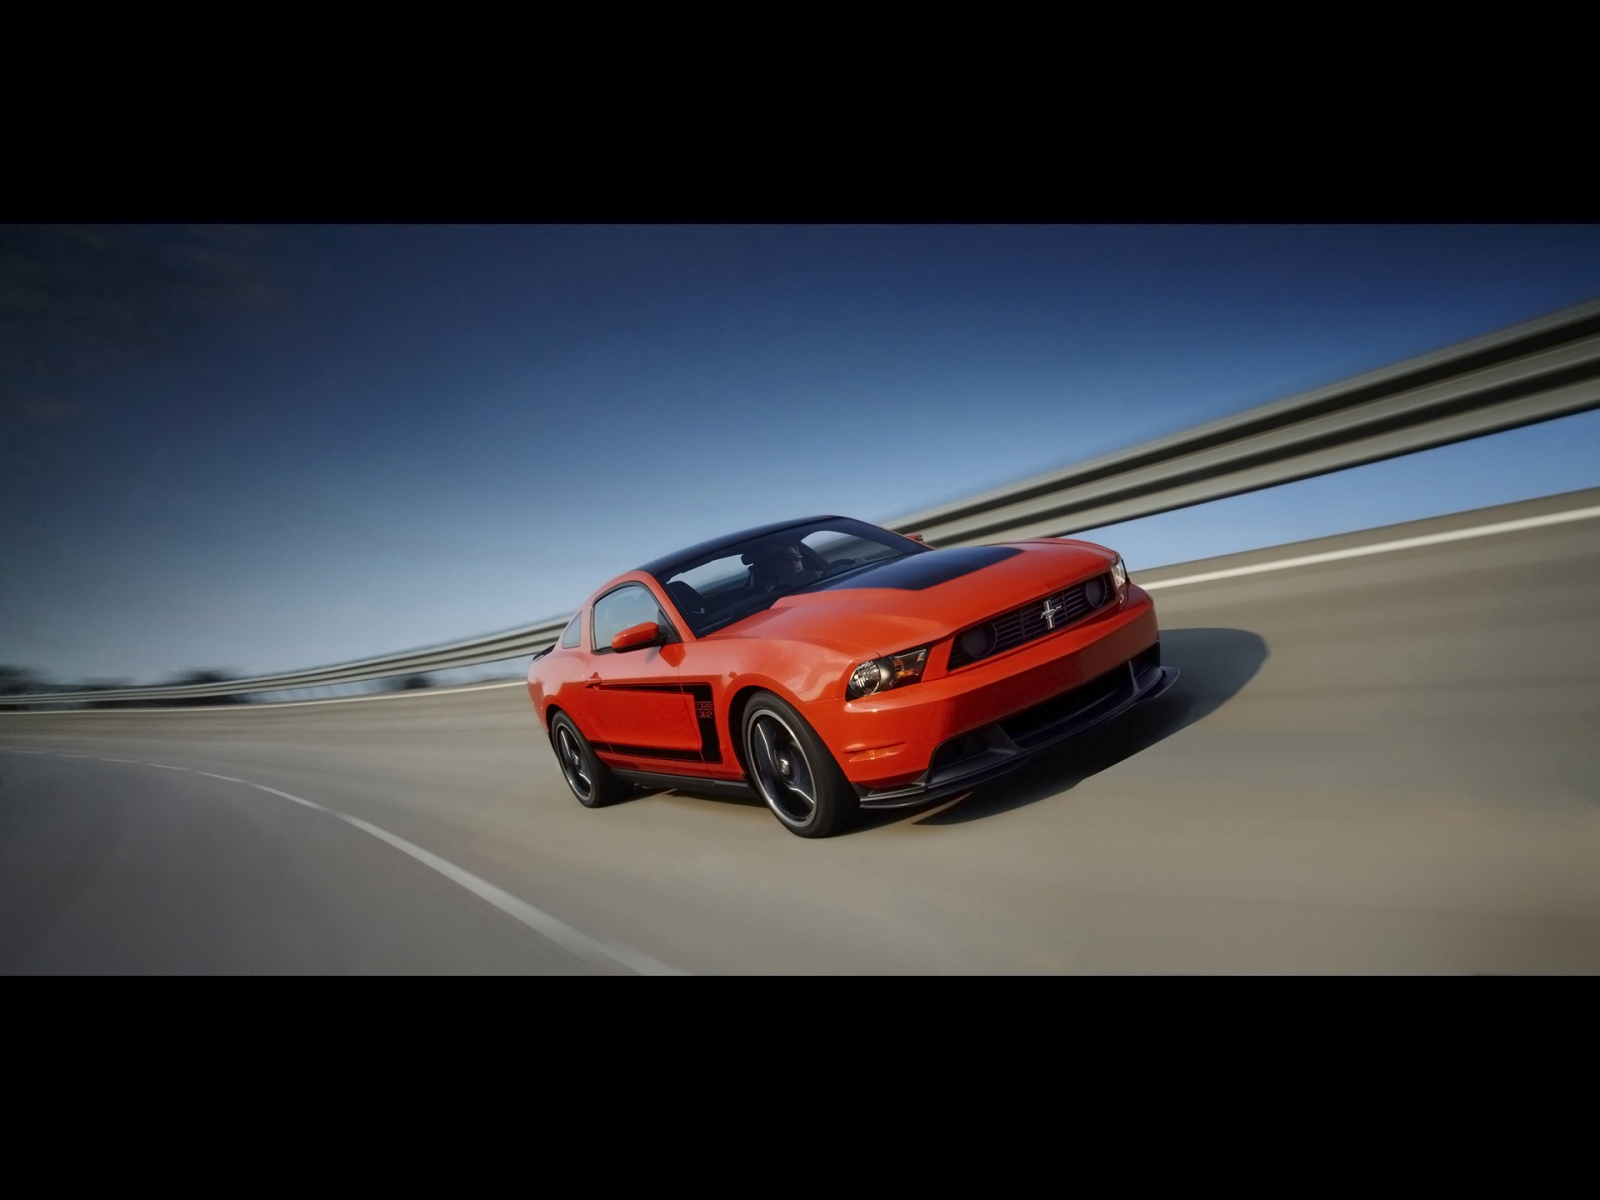 Ford Mustang Boss 302 High Speed orange High Definition Wallpaper